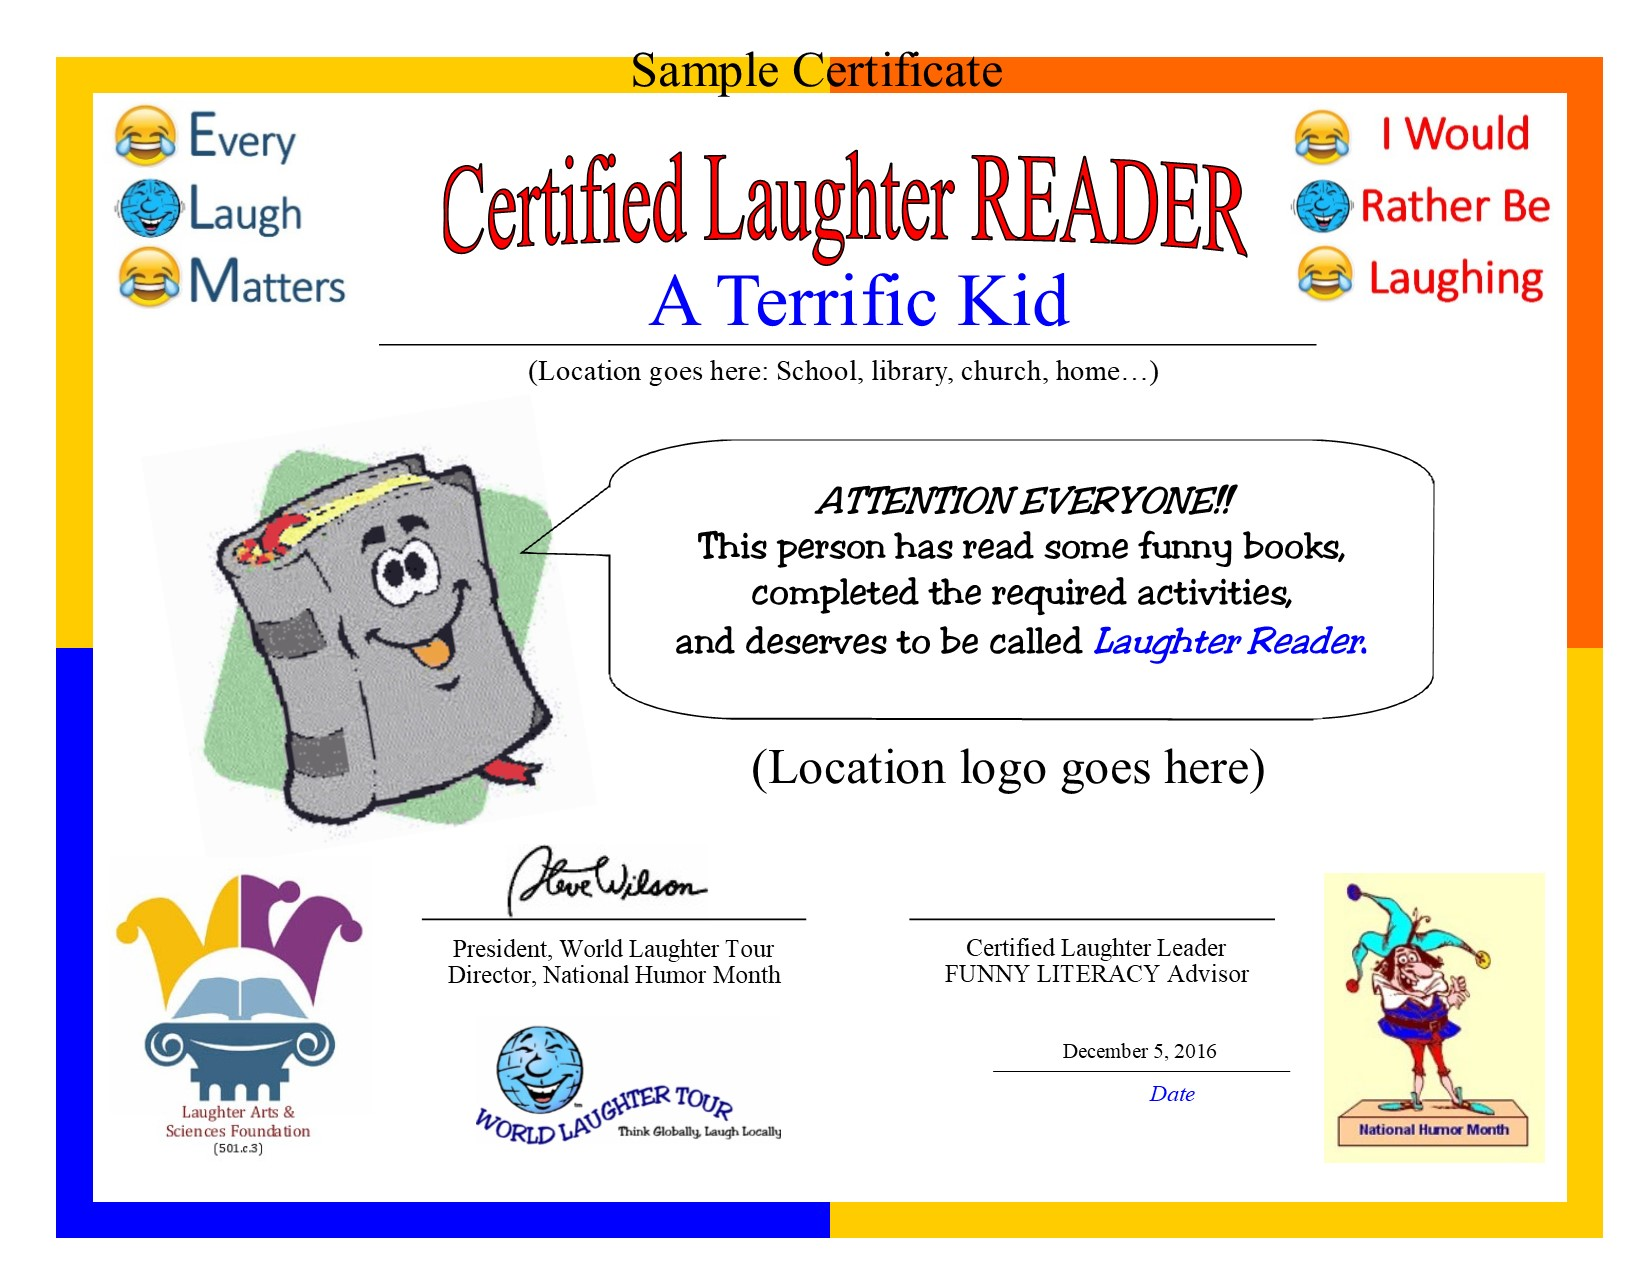 Funny literacy gets kids reading world laughter tour we provide the certificate template alramifo Images